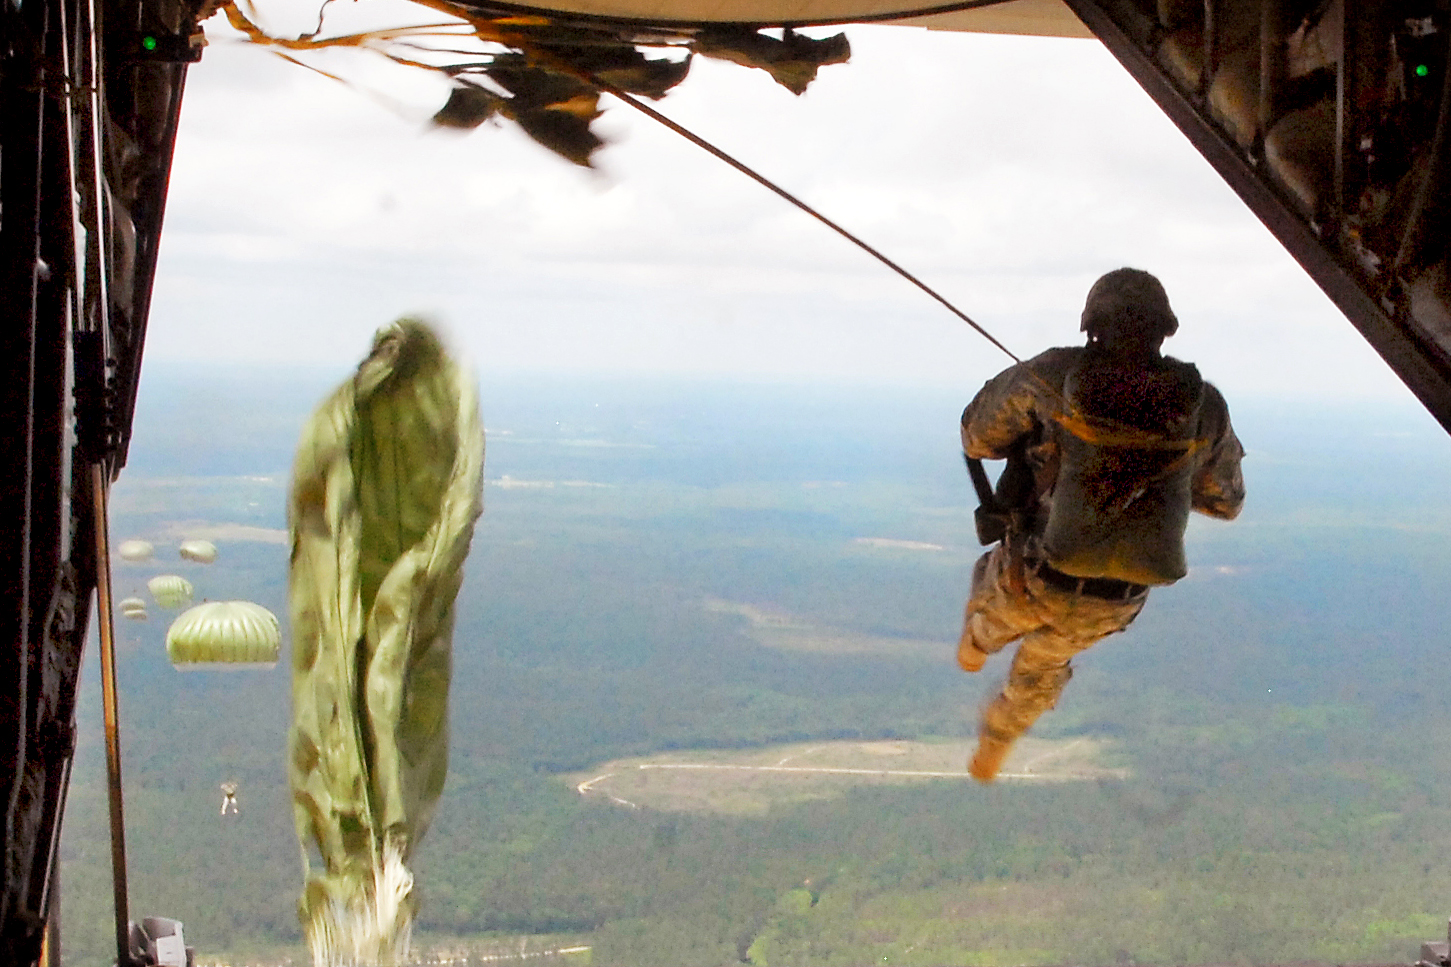 FileFlickr   The US Army   Airborne Jumpjpg   Wikimedia Commons 1451x967